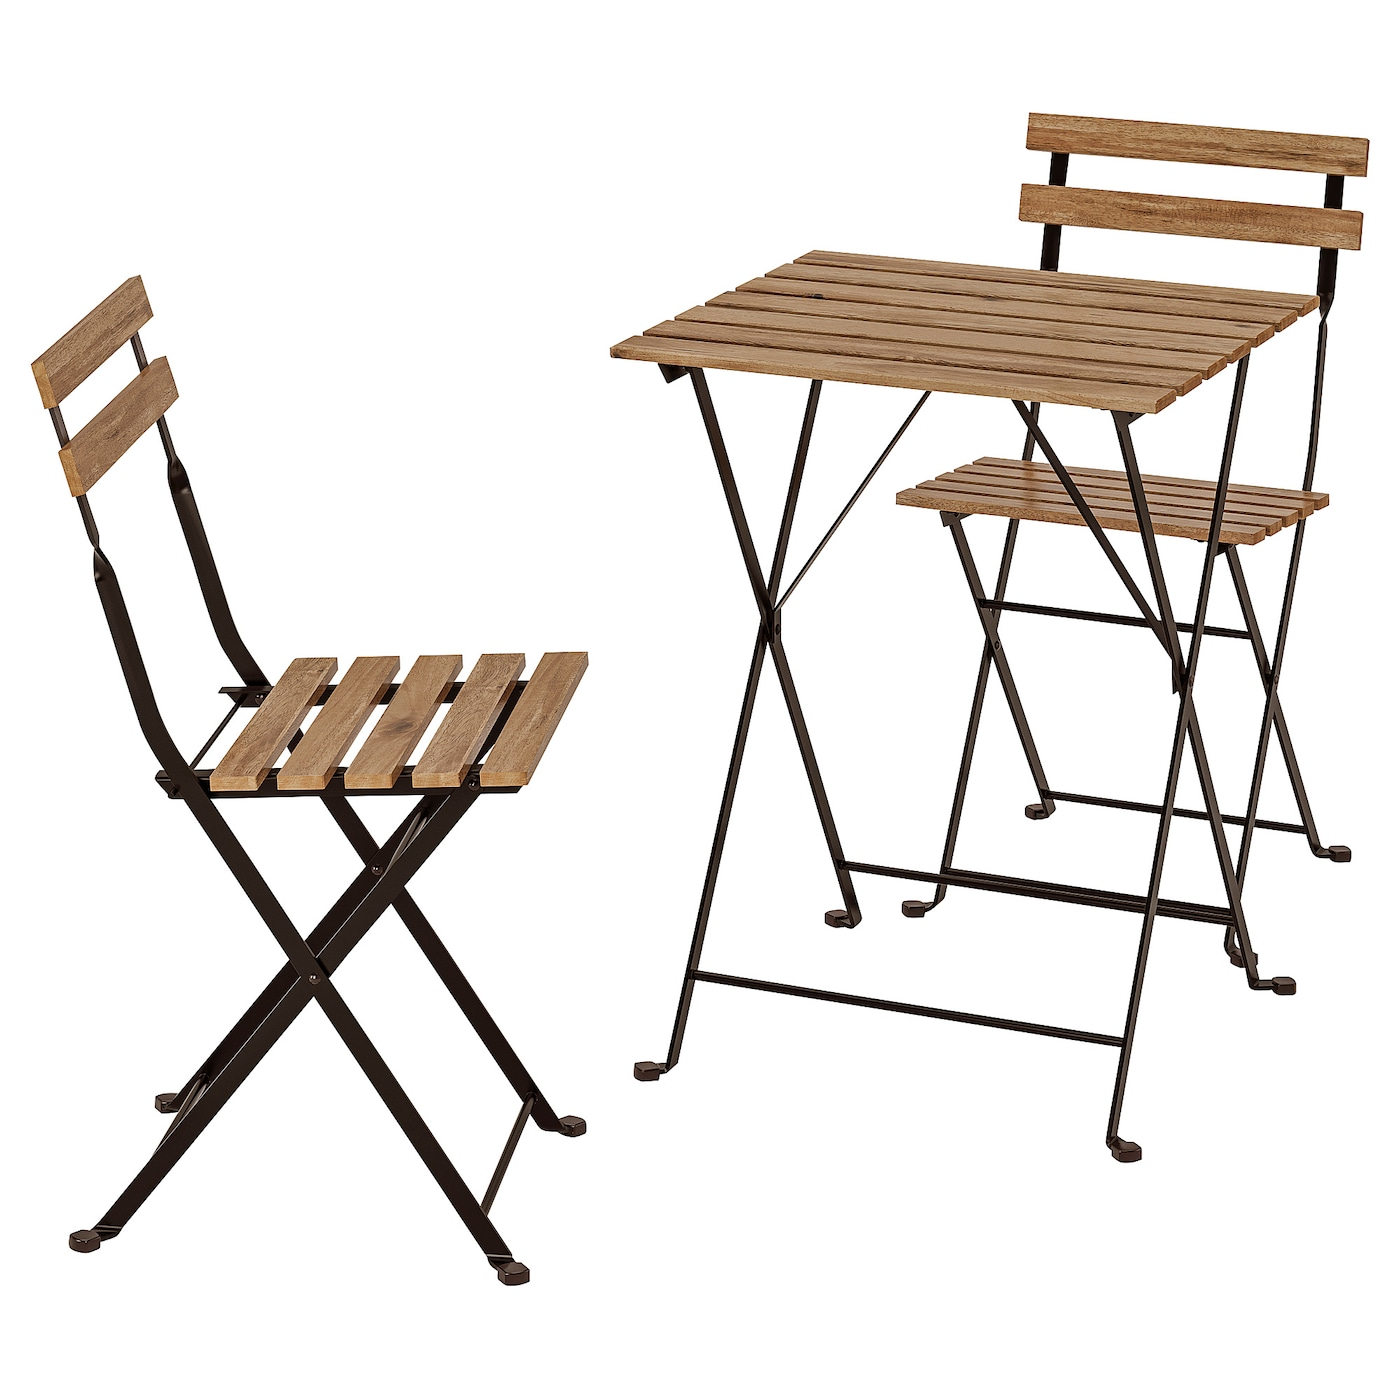 TÄRNÖ Table+15 chairs, outdoor - black acacia, steel grey-brown stained  light brown stained